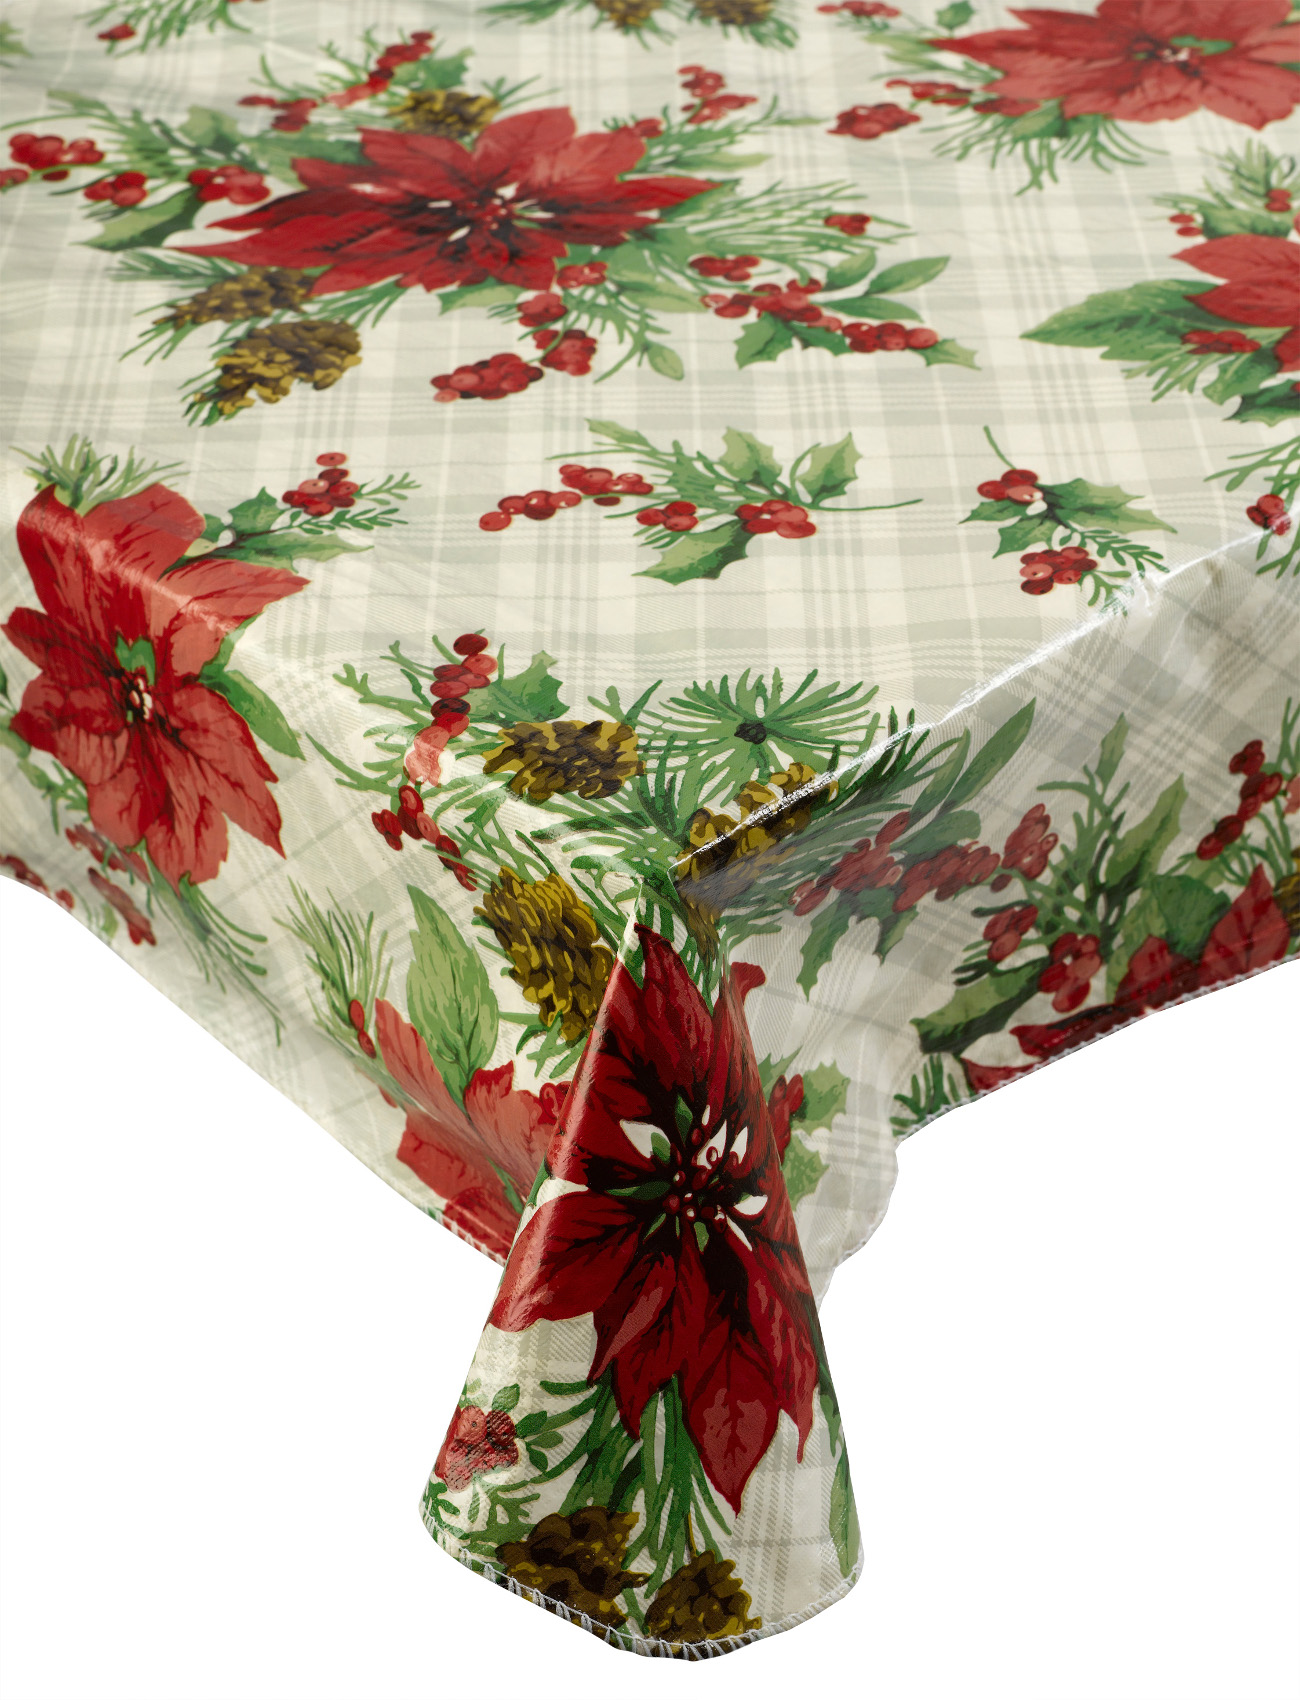 Christmas Tablecloths: Add style and extend the life of your dining table with a new tablecloth. specialtysports.ga - Your Online Table Linens & Decor Store! Get 5% in rewards with Club O! Festive Poinsettia Embroidered Cutwork Holiday Tablecloth, 60 by Inch. New Arrival.